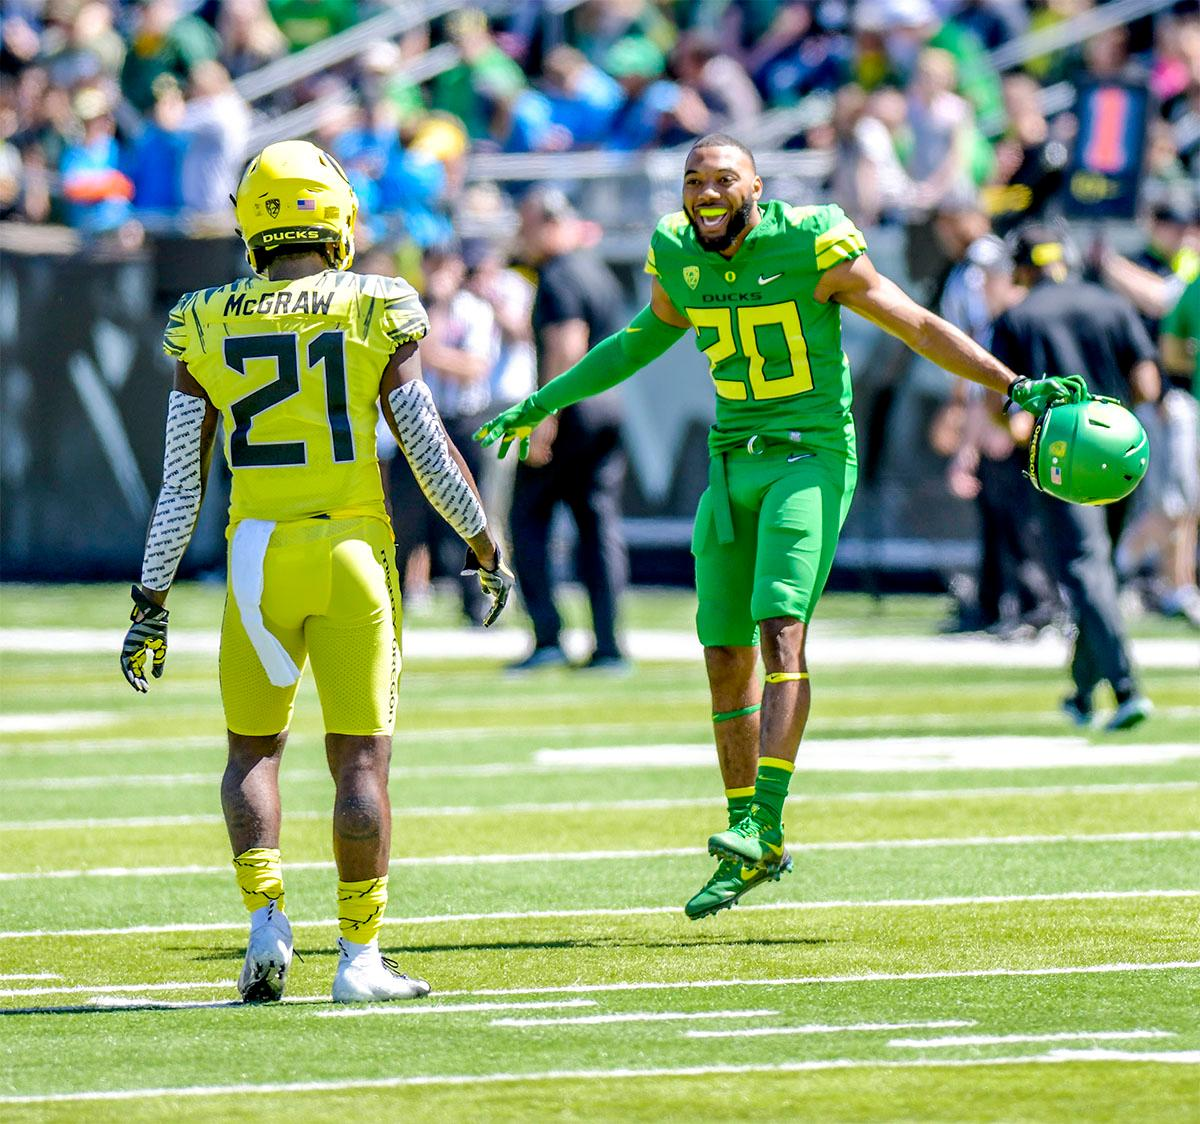 Tony Brooks-James (#20) breaks into a dance before the start of the game. The Thunder defeated the Lightning 59-24 in the Spring Game on Saturday at Autzen Stadium. Photo by August Frank